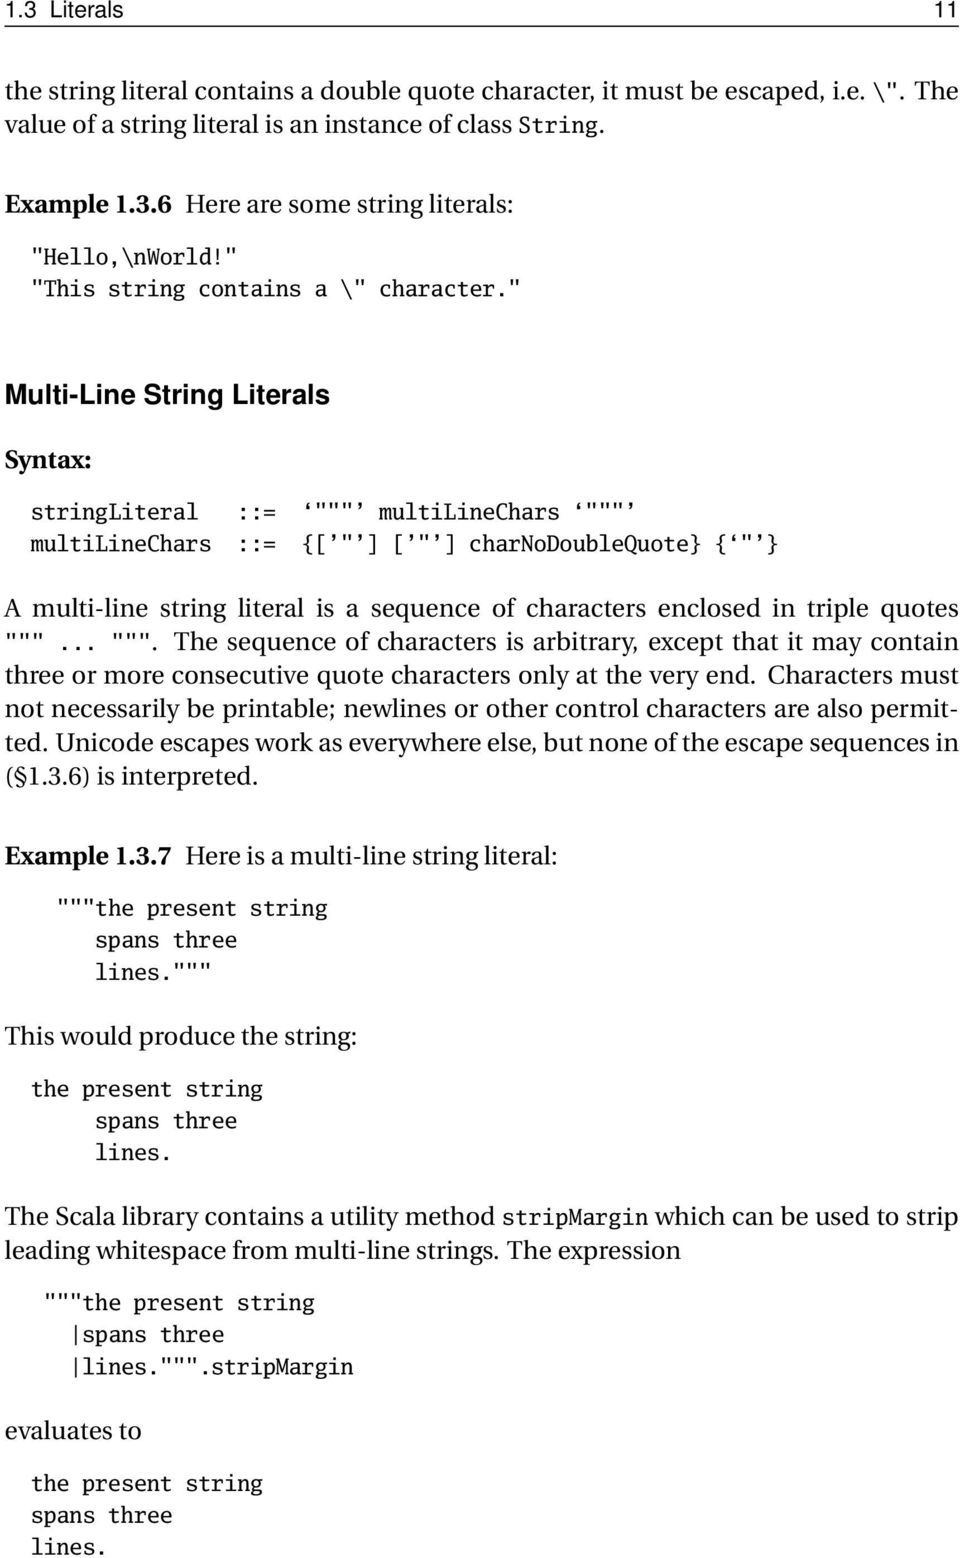 """ Multi-Line String Literals stringliteral ::= """""" multilinechars """""" multilinechars ::= {[ "" ] [ "" ] charnodoublequote { "" A multi-line string literal is a sequence of characters enclosed in triple"